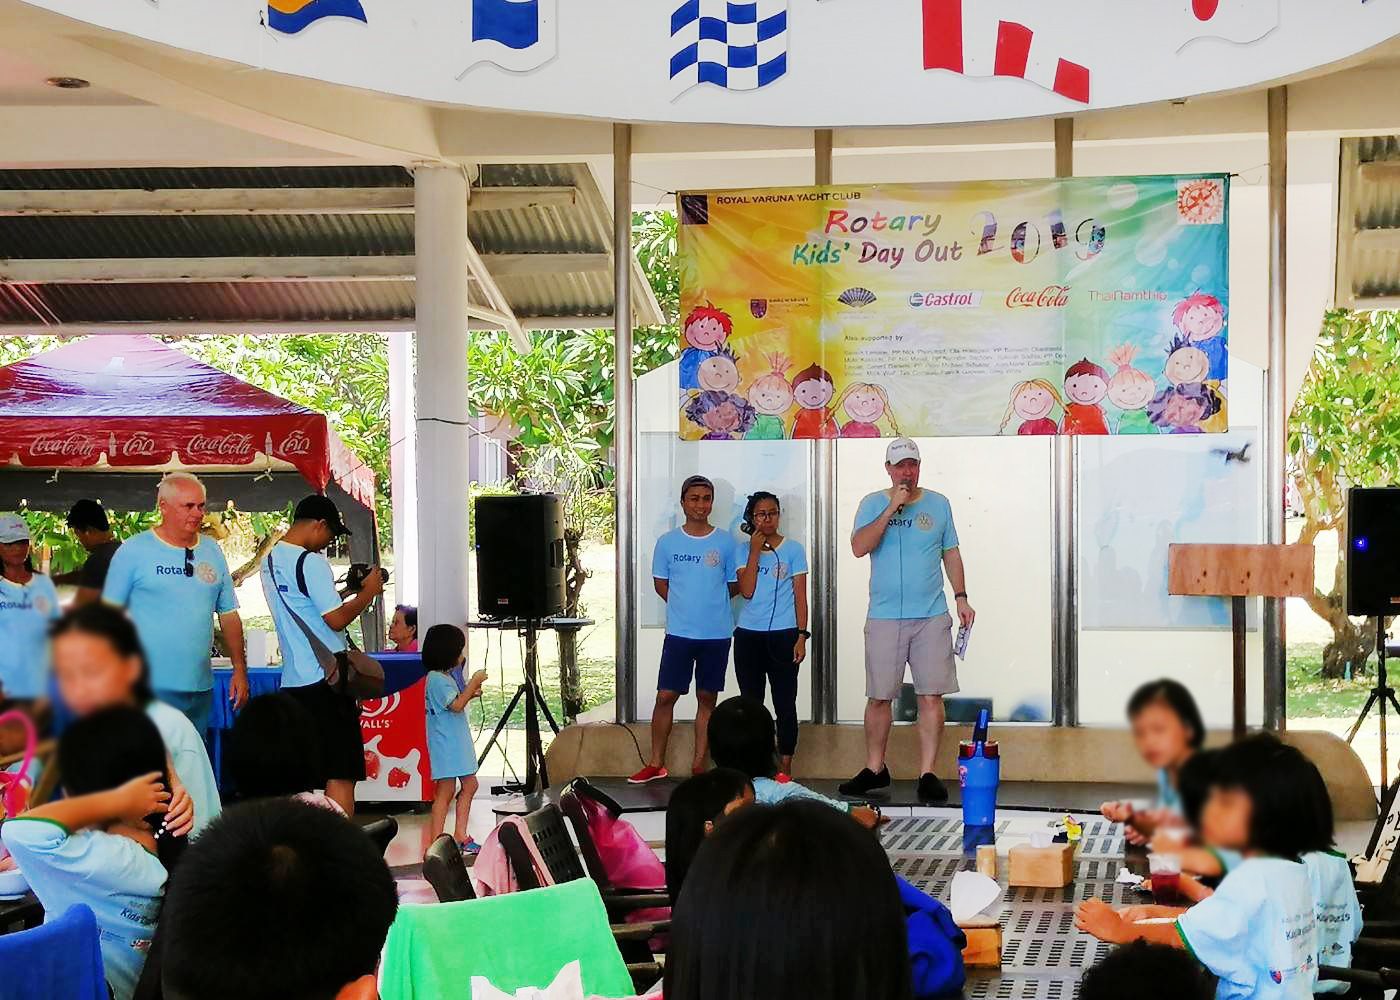 กิจกรรม​ Kid's Day​ Out​ ณ​ Royal​ Varuna Sailing Club